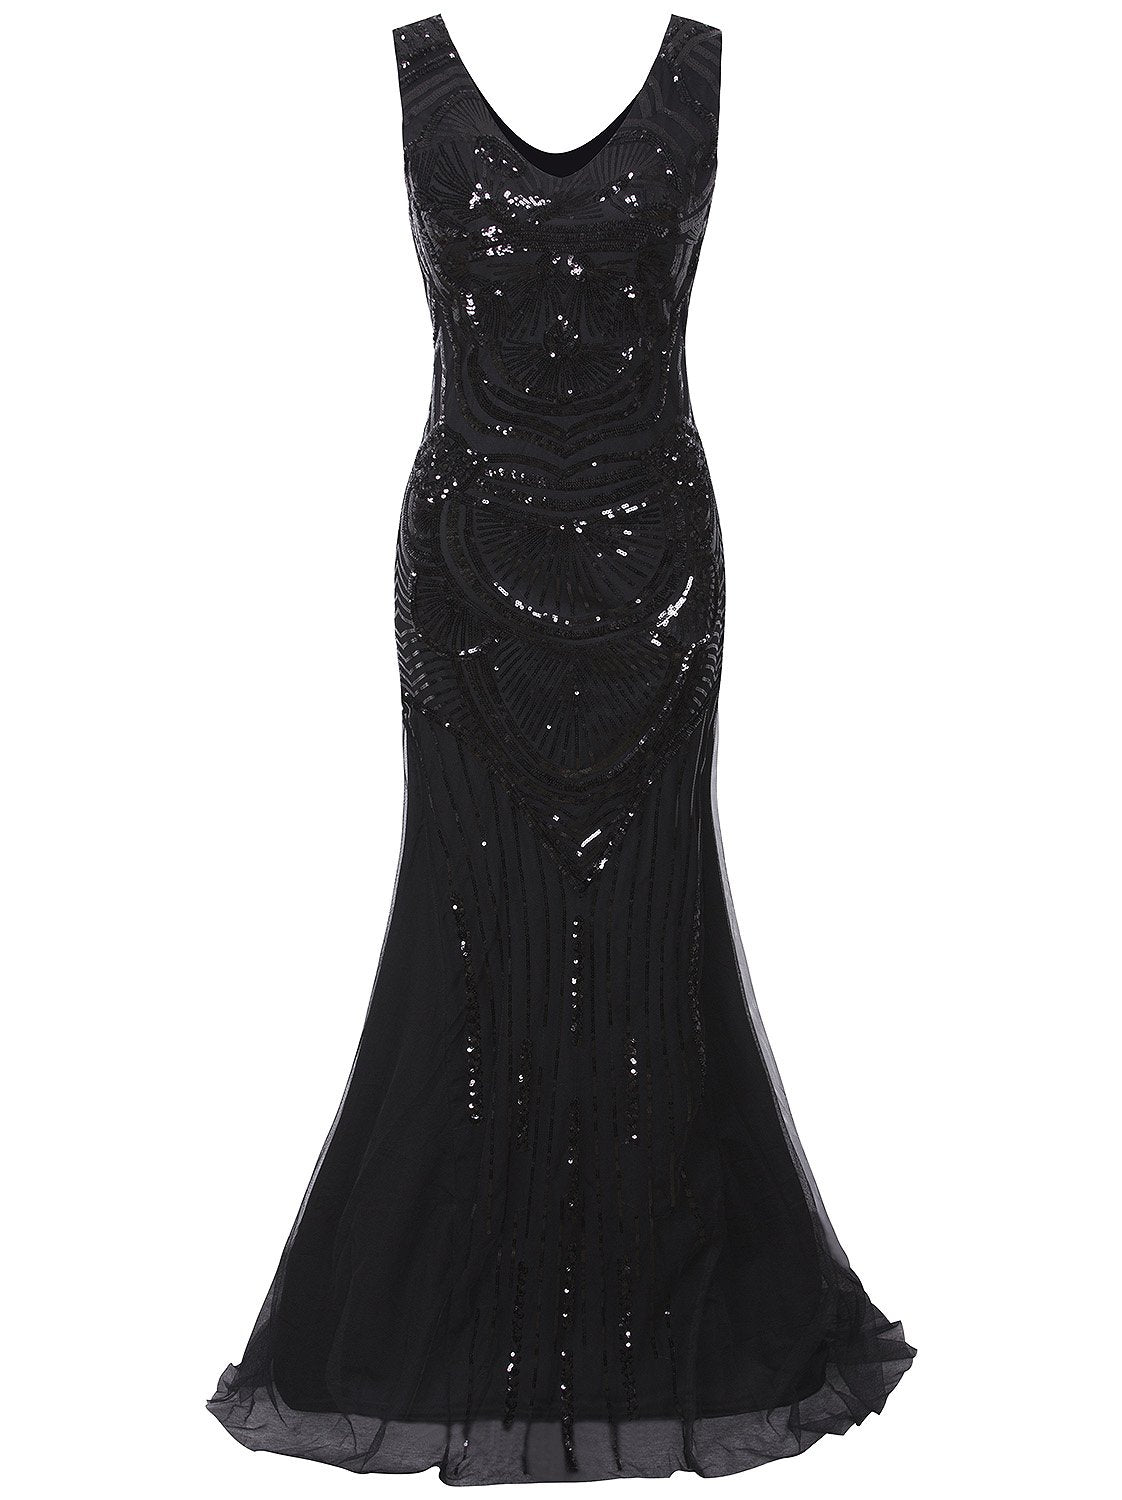 1920s Long Masquerade Maxi Peaky Blinders Prom Great Gatsby Vintage Gowns Sequin Embellished Evening Dress Black